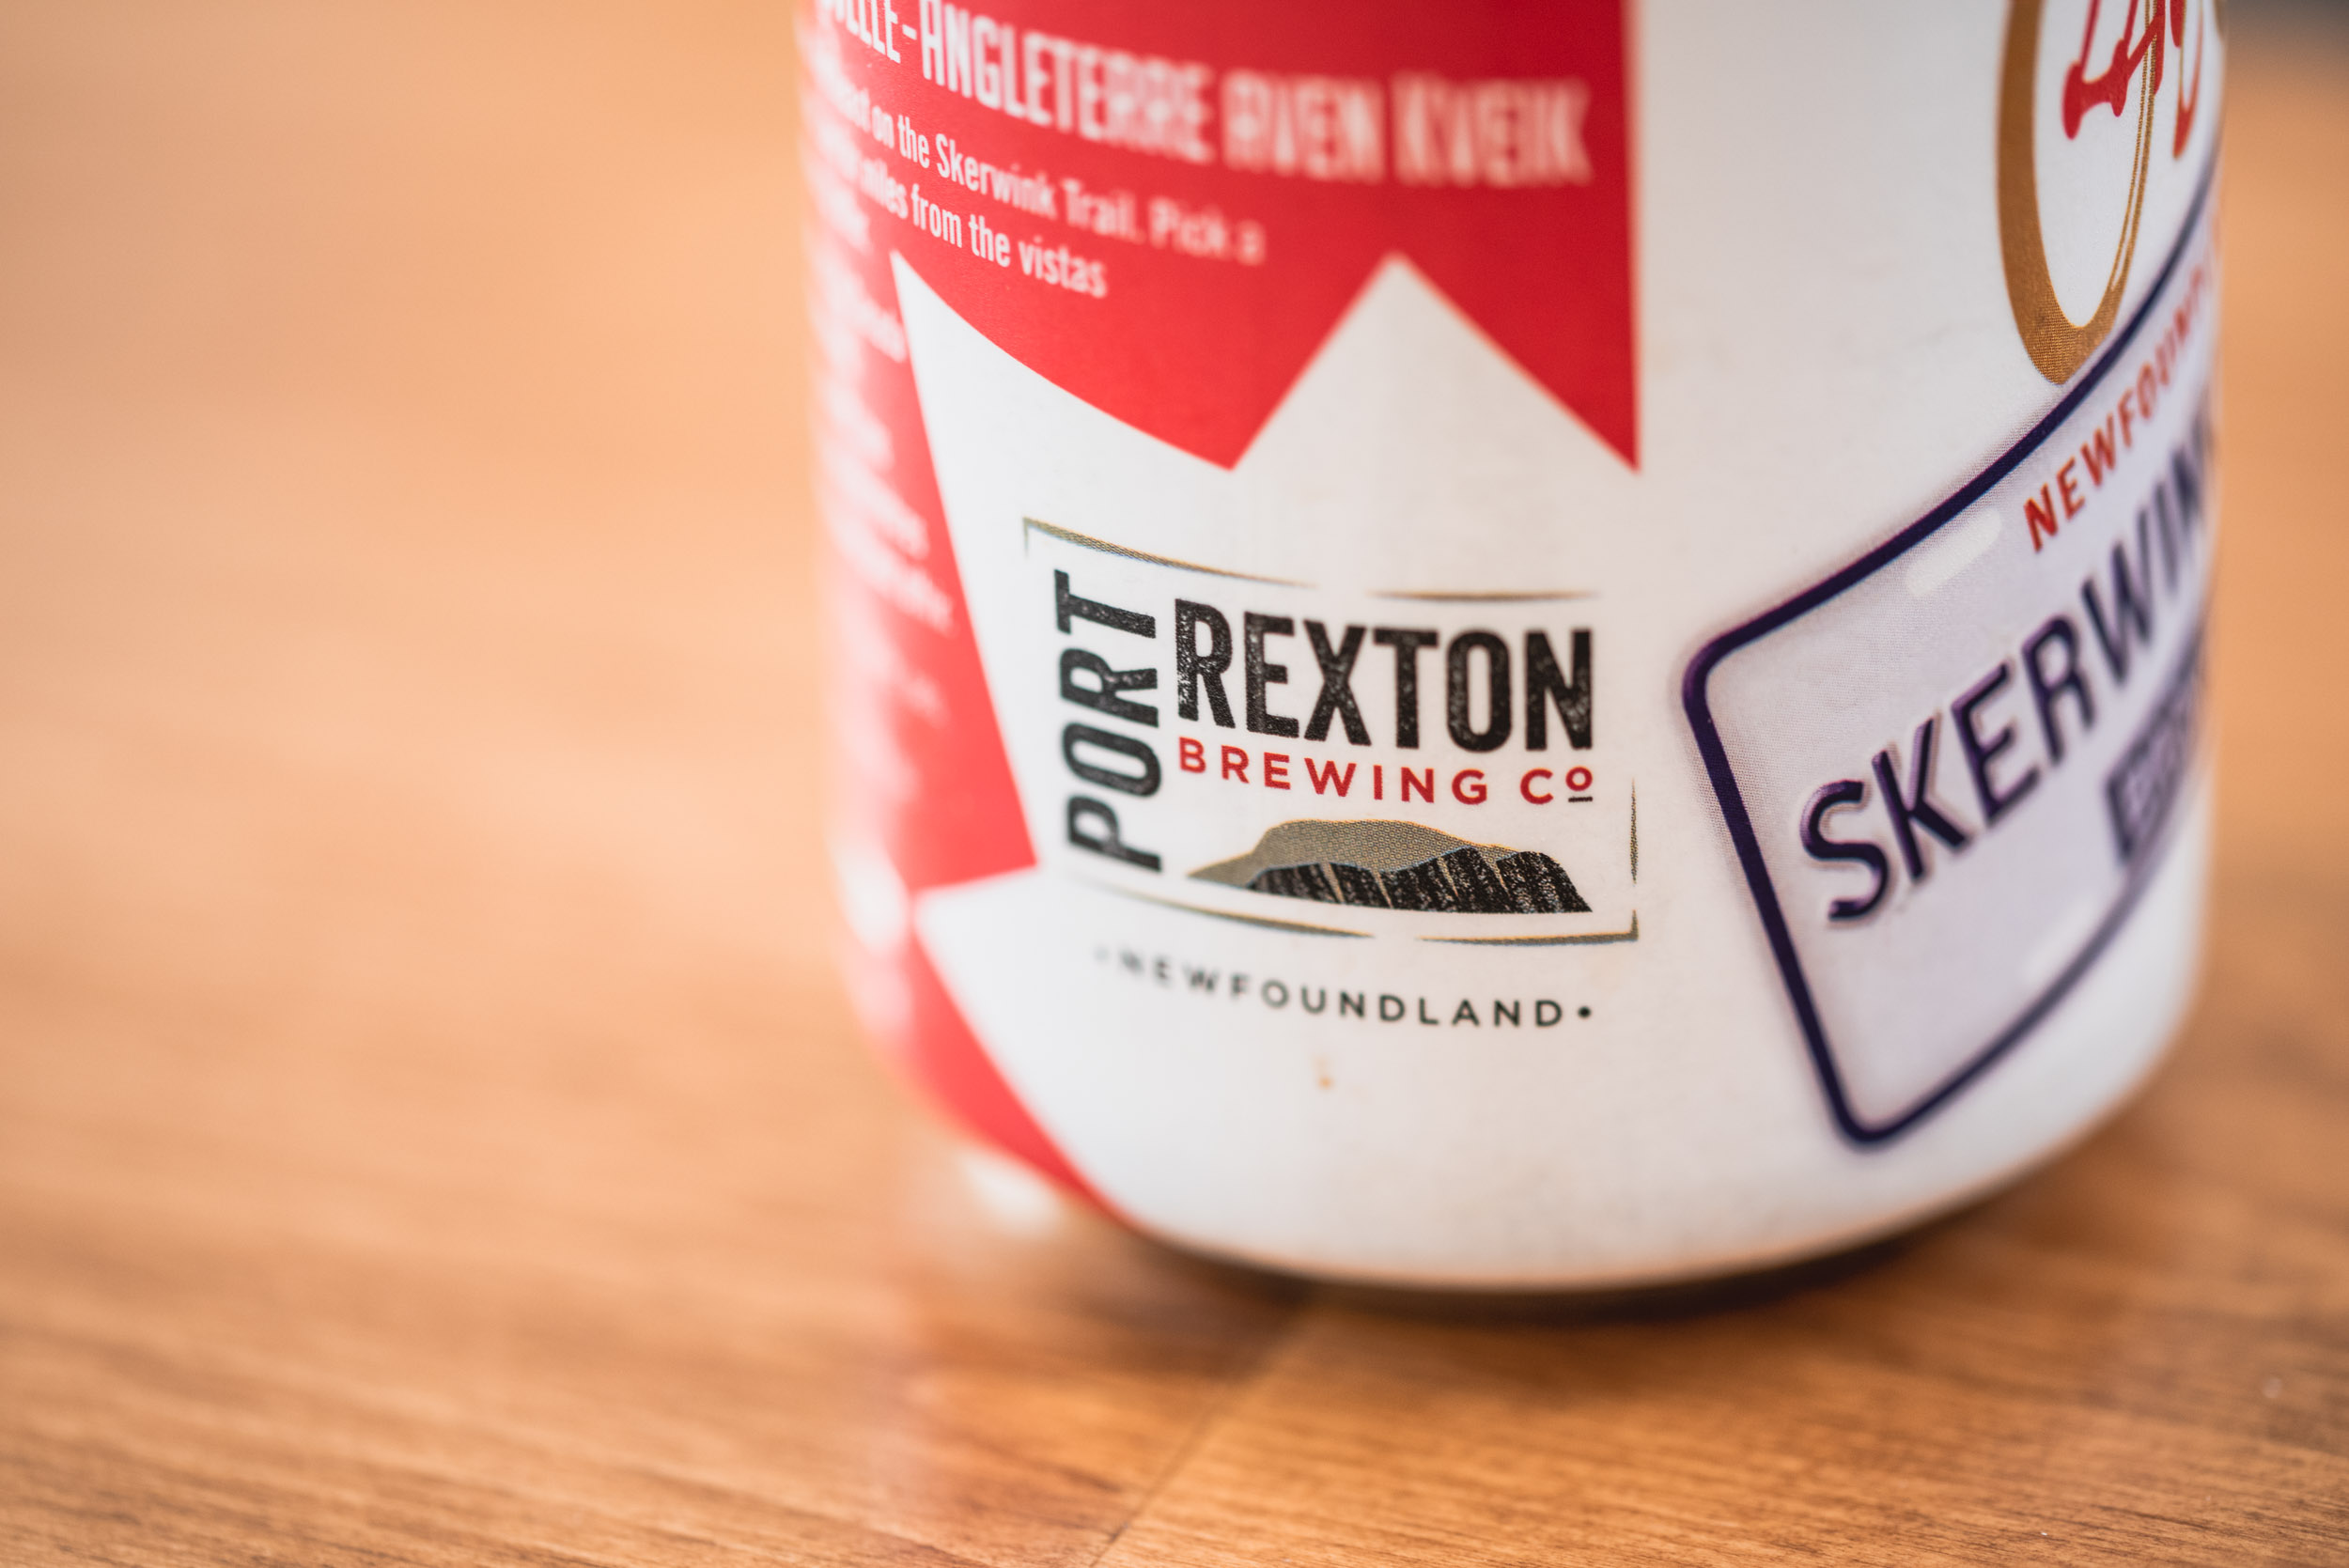 Port Rexton collaboration beer with Red Racer Brewing.